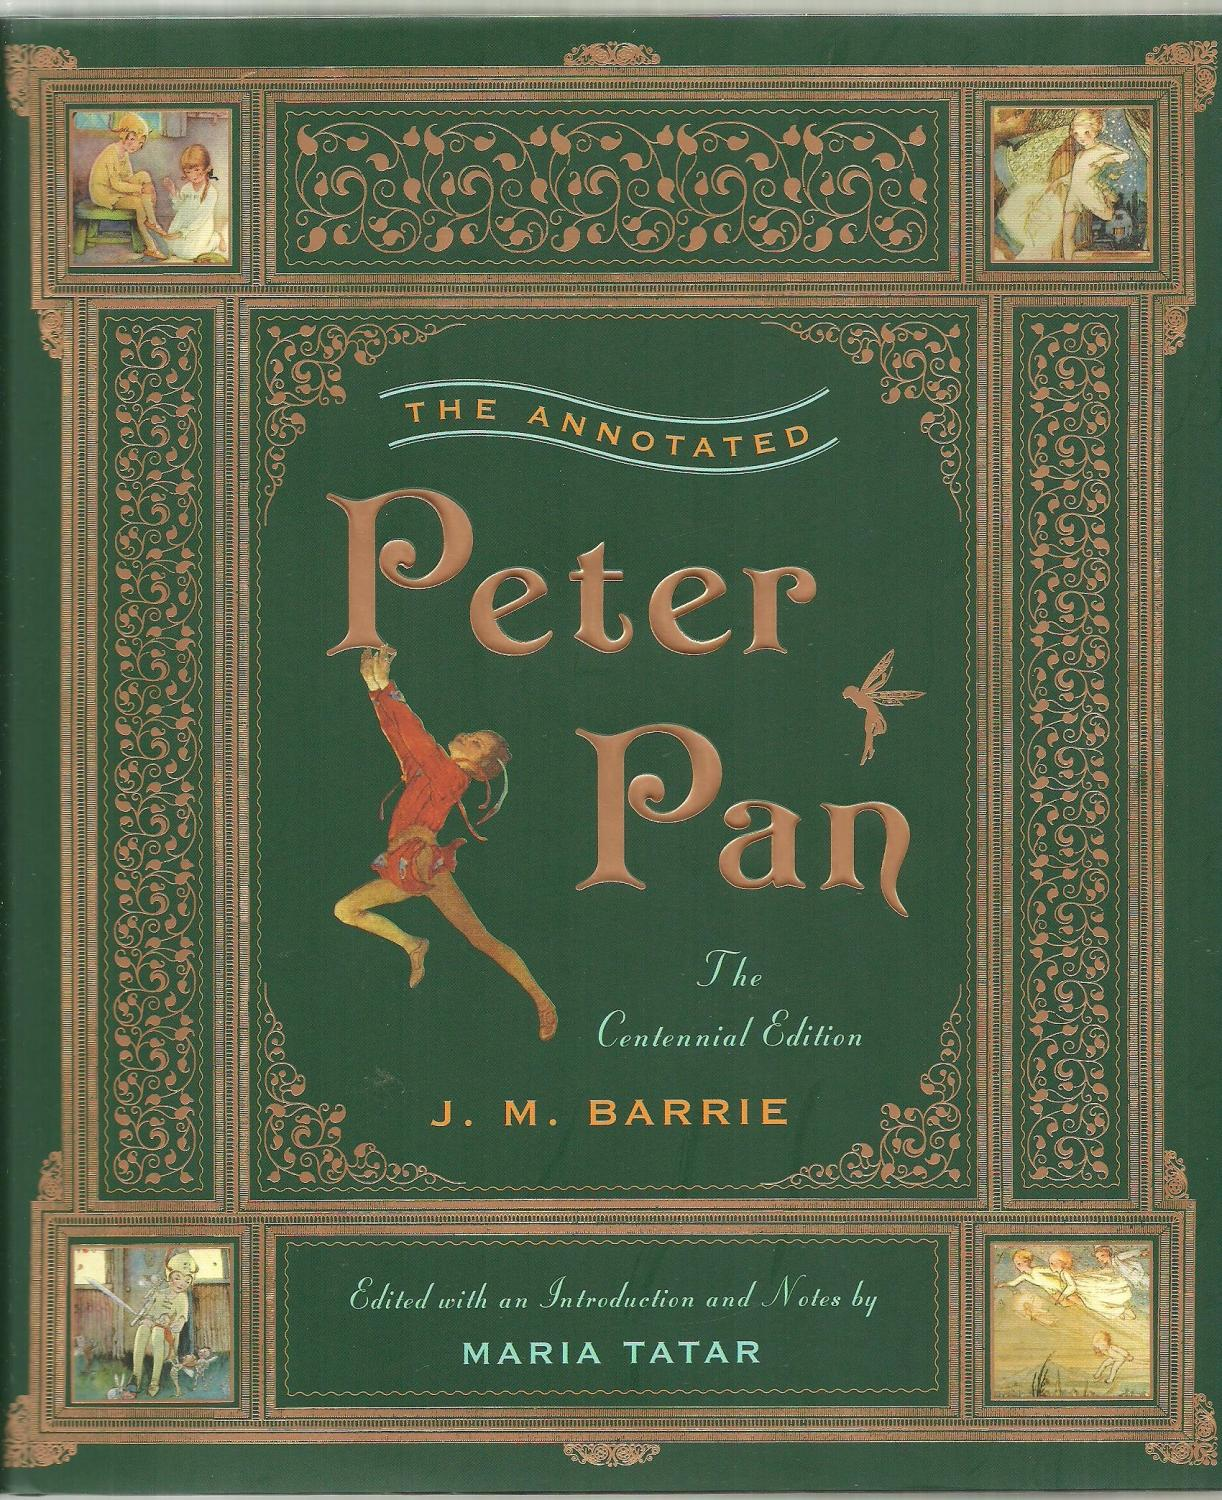 Peter Pan Libro Original The Annotated Peter Pan The Centennial Edition By J M